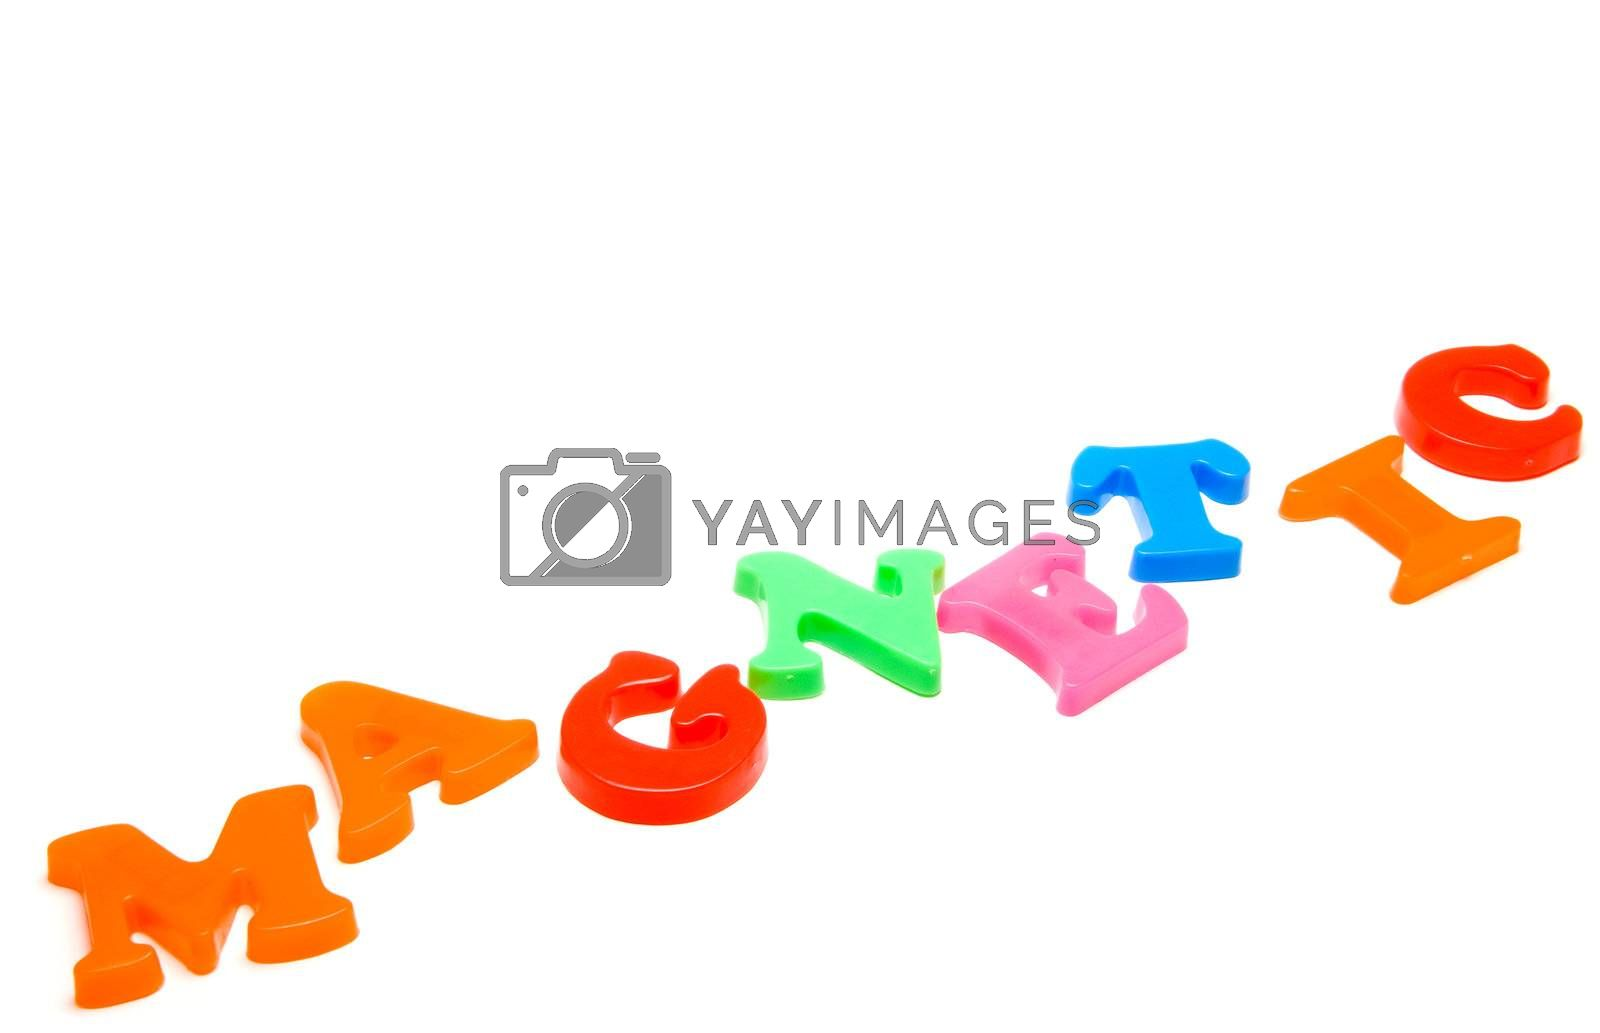 Preschol refrigerator magnet letters spelling out the word Magnetic.